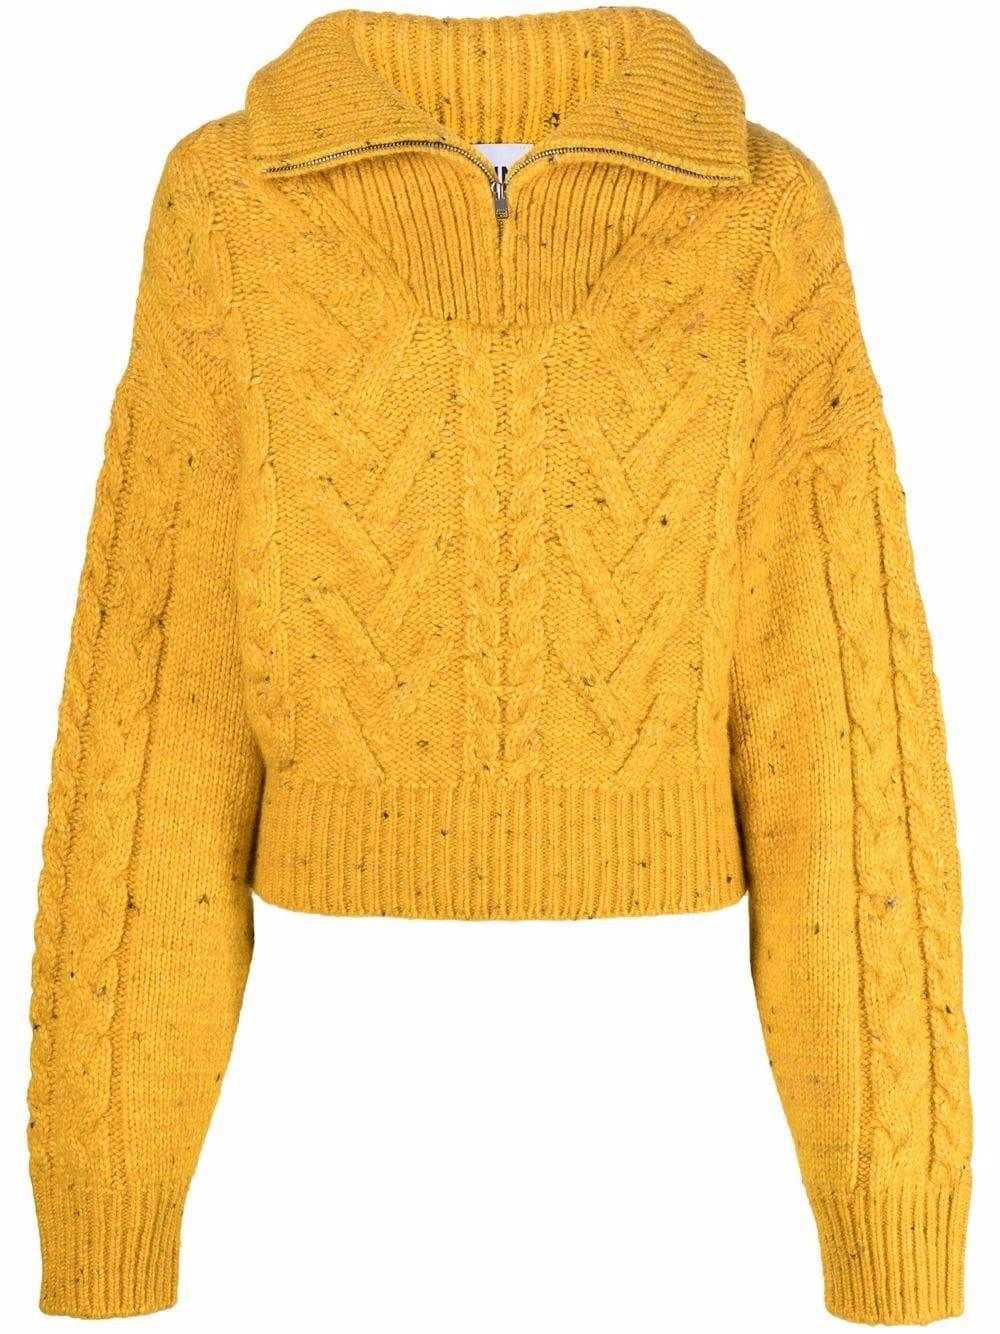 Cable Knit Zip Up Pullover Sweater Item # K1596